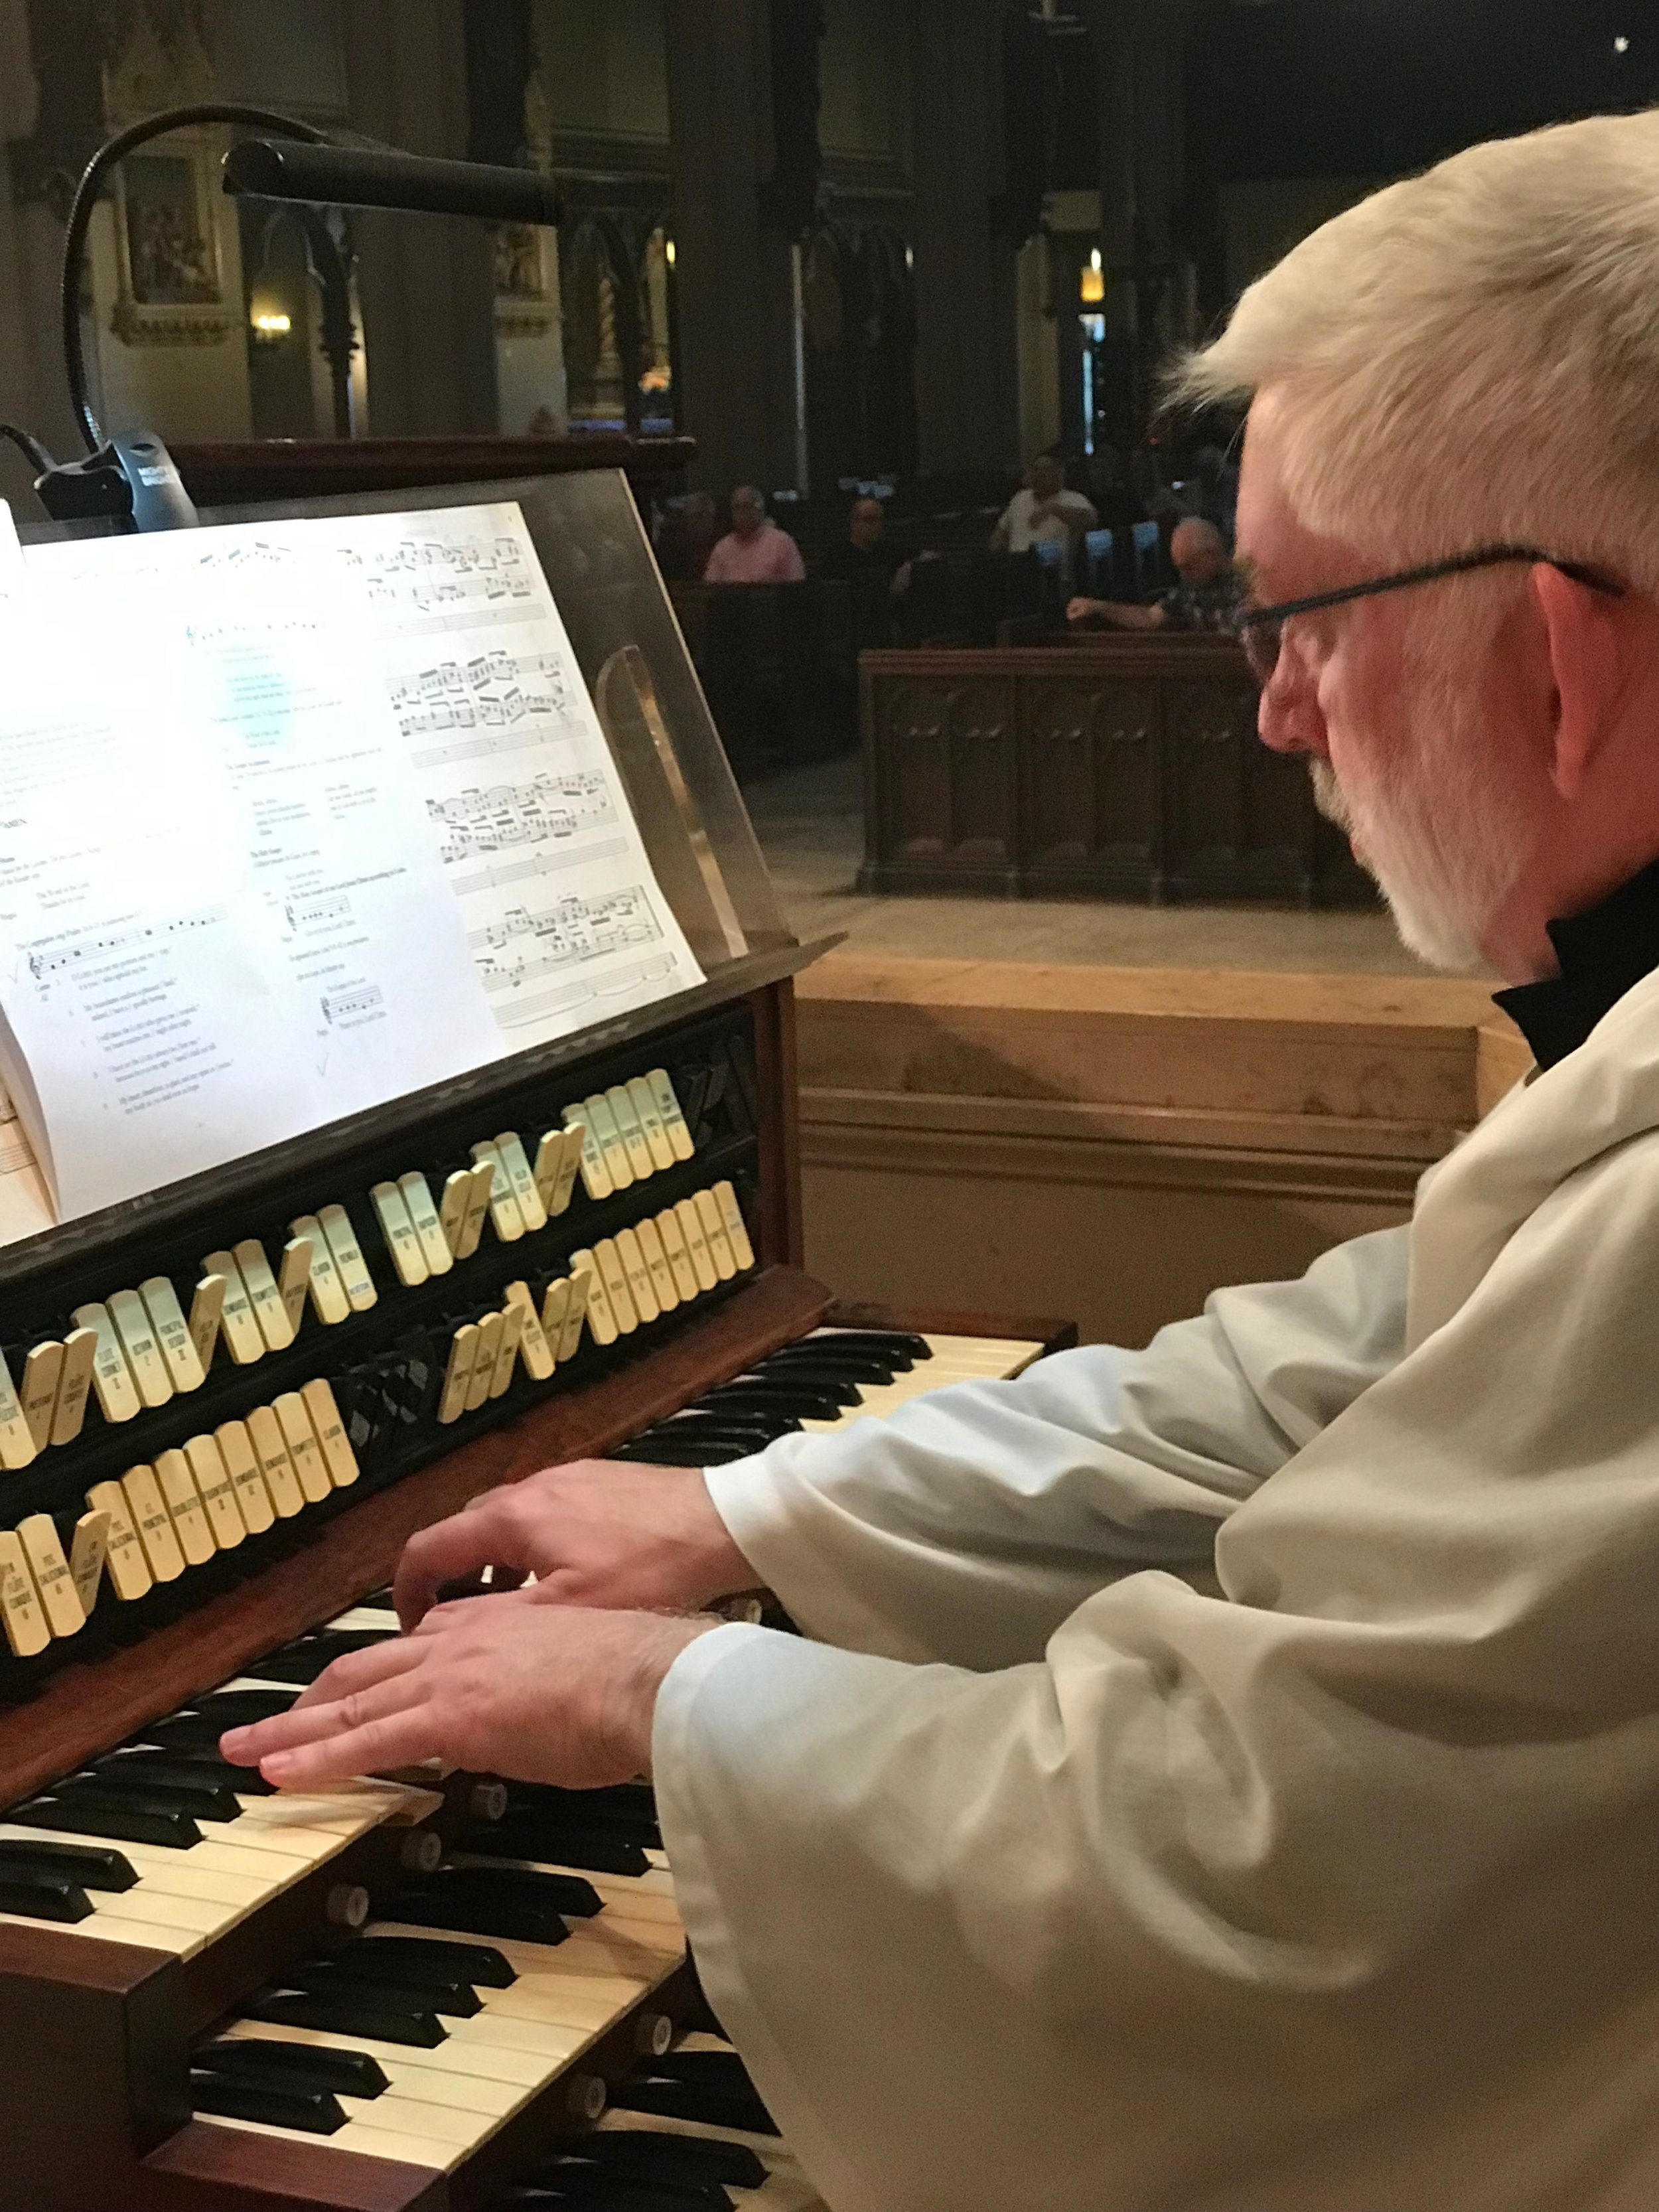 Parishioner Clark Anderson played the Solemn Mass on Sunday, June 30, 2019, while Dr. David Hurd was attending the annual meeting of the Association of Anglican Musicians.  Photo: Damien Joseph SSF